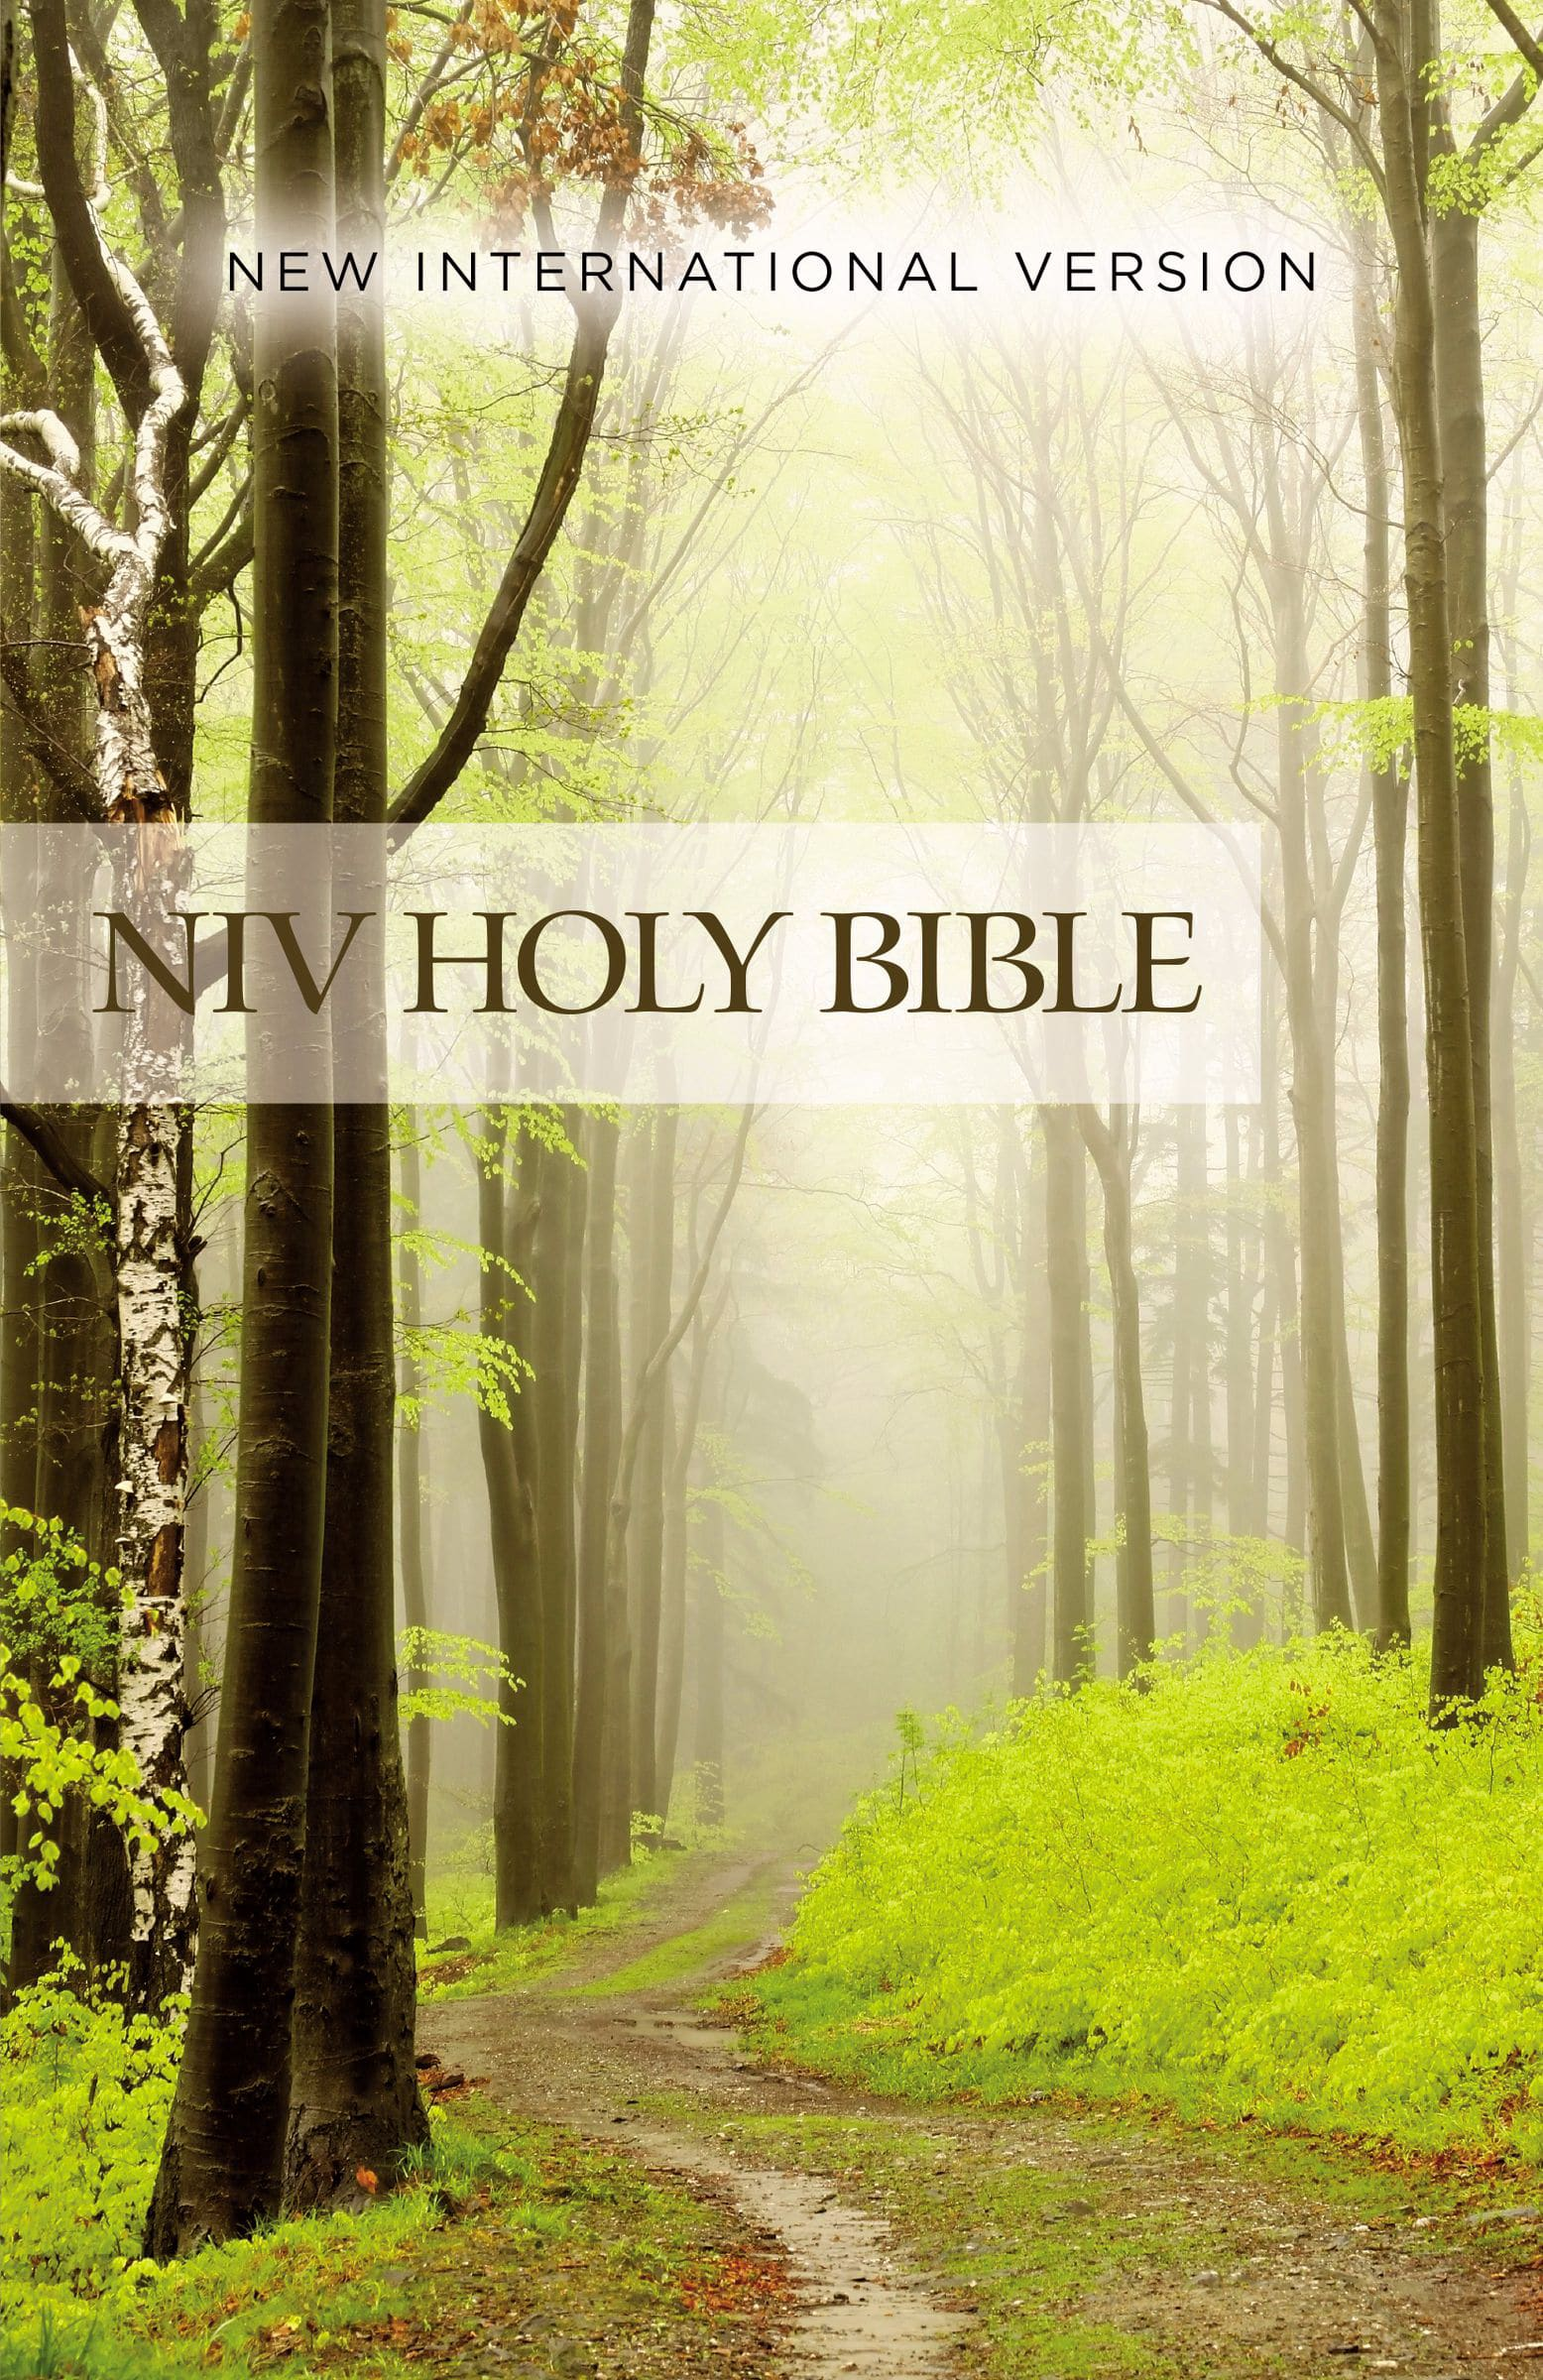 Evangelism growth churchgrowth niv value bible softcover fandeluxe Gallery